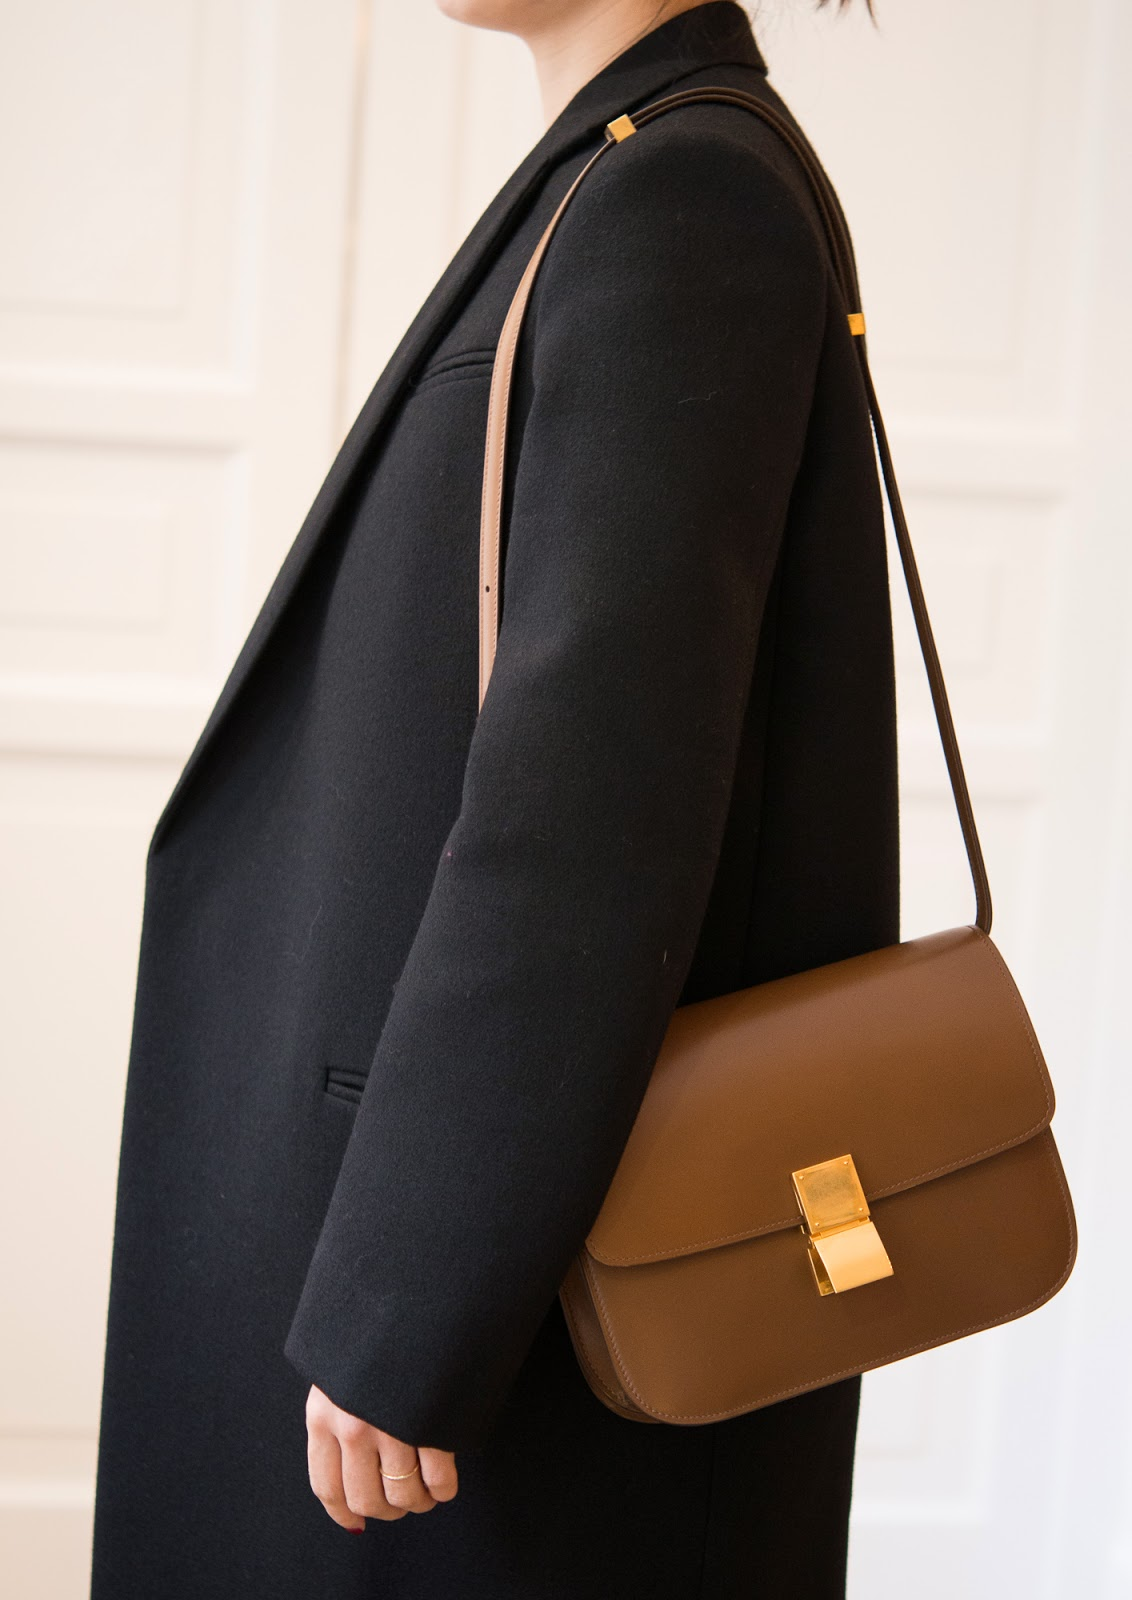 Tout le Temps: Purchased: the C¨¦line classic box bag